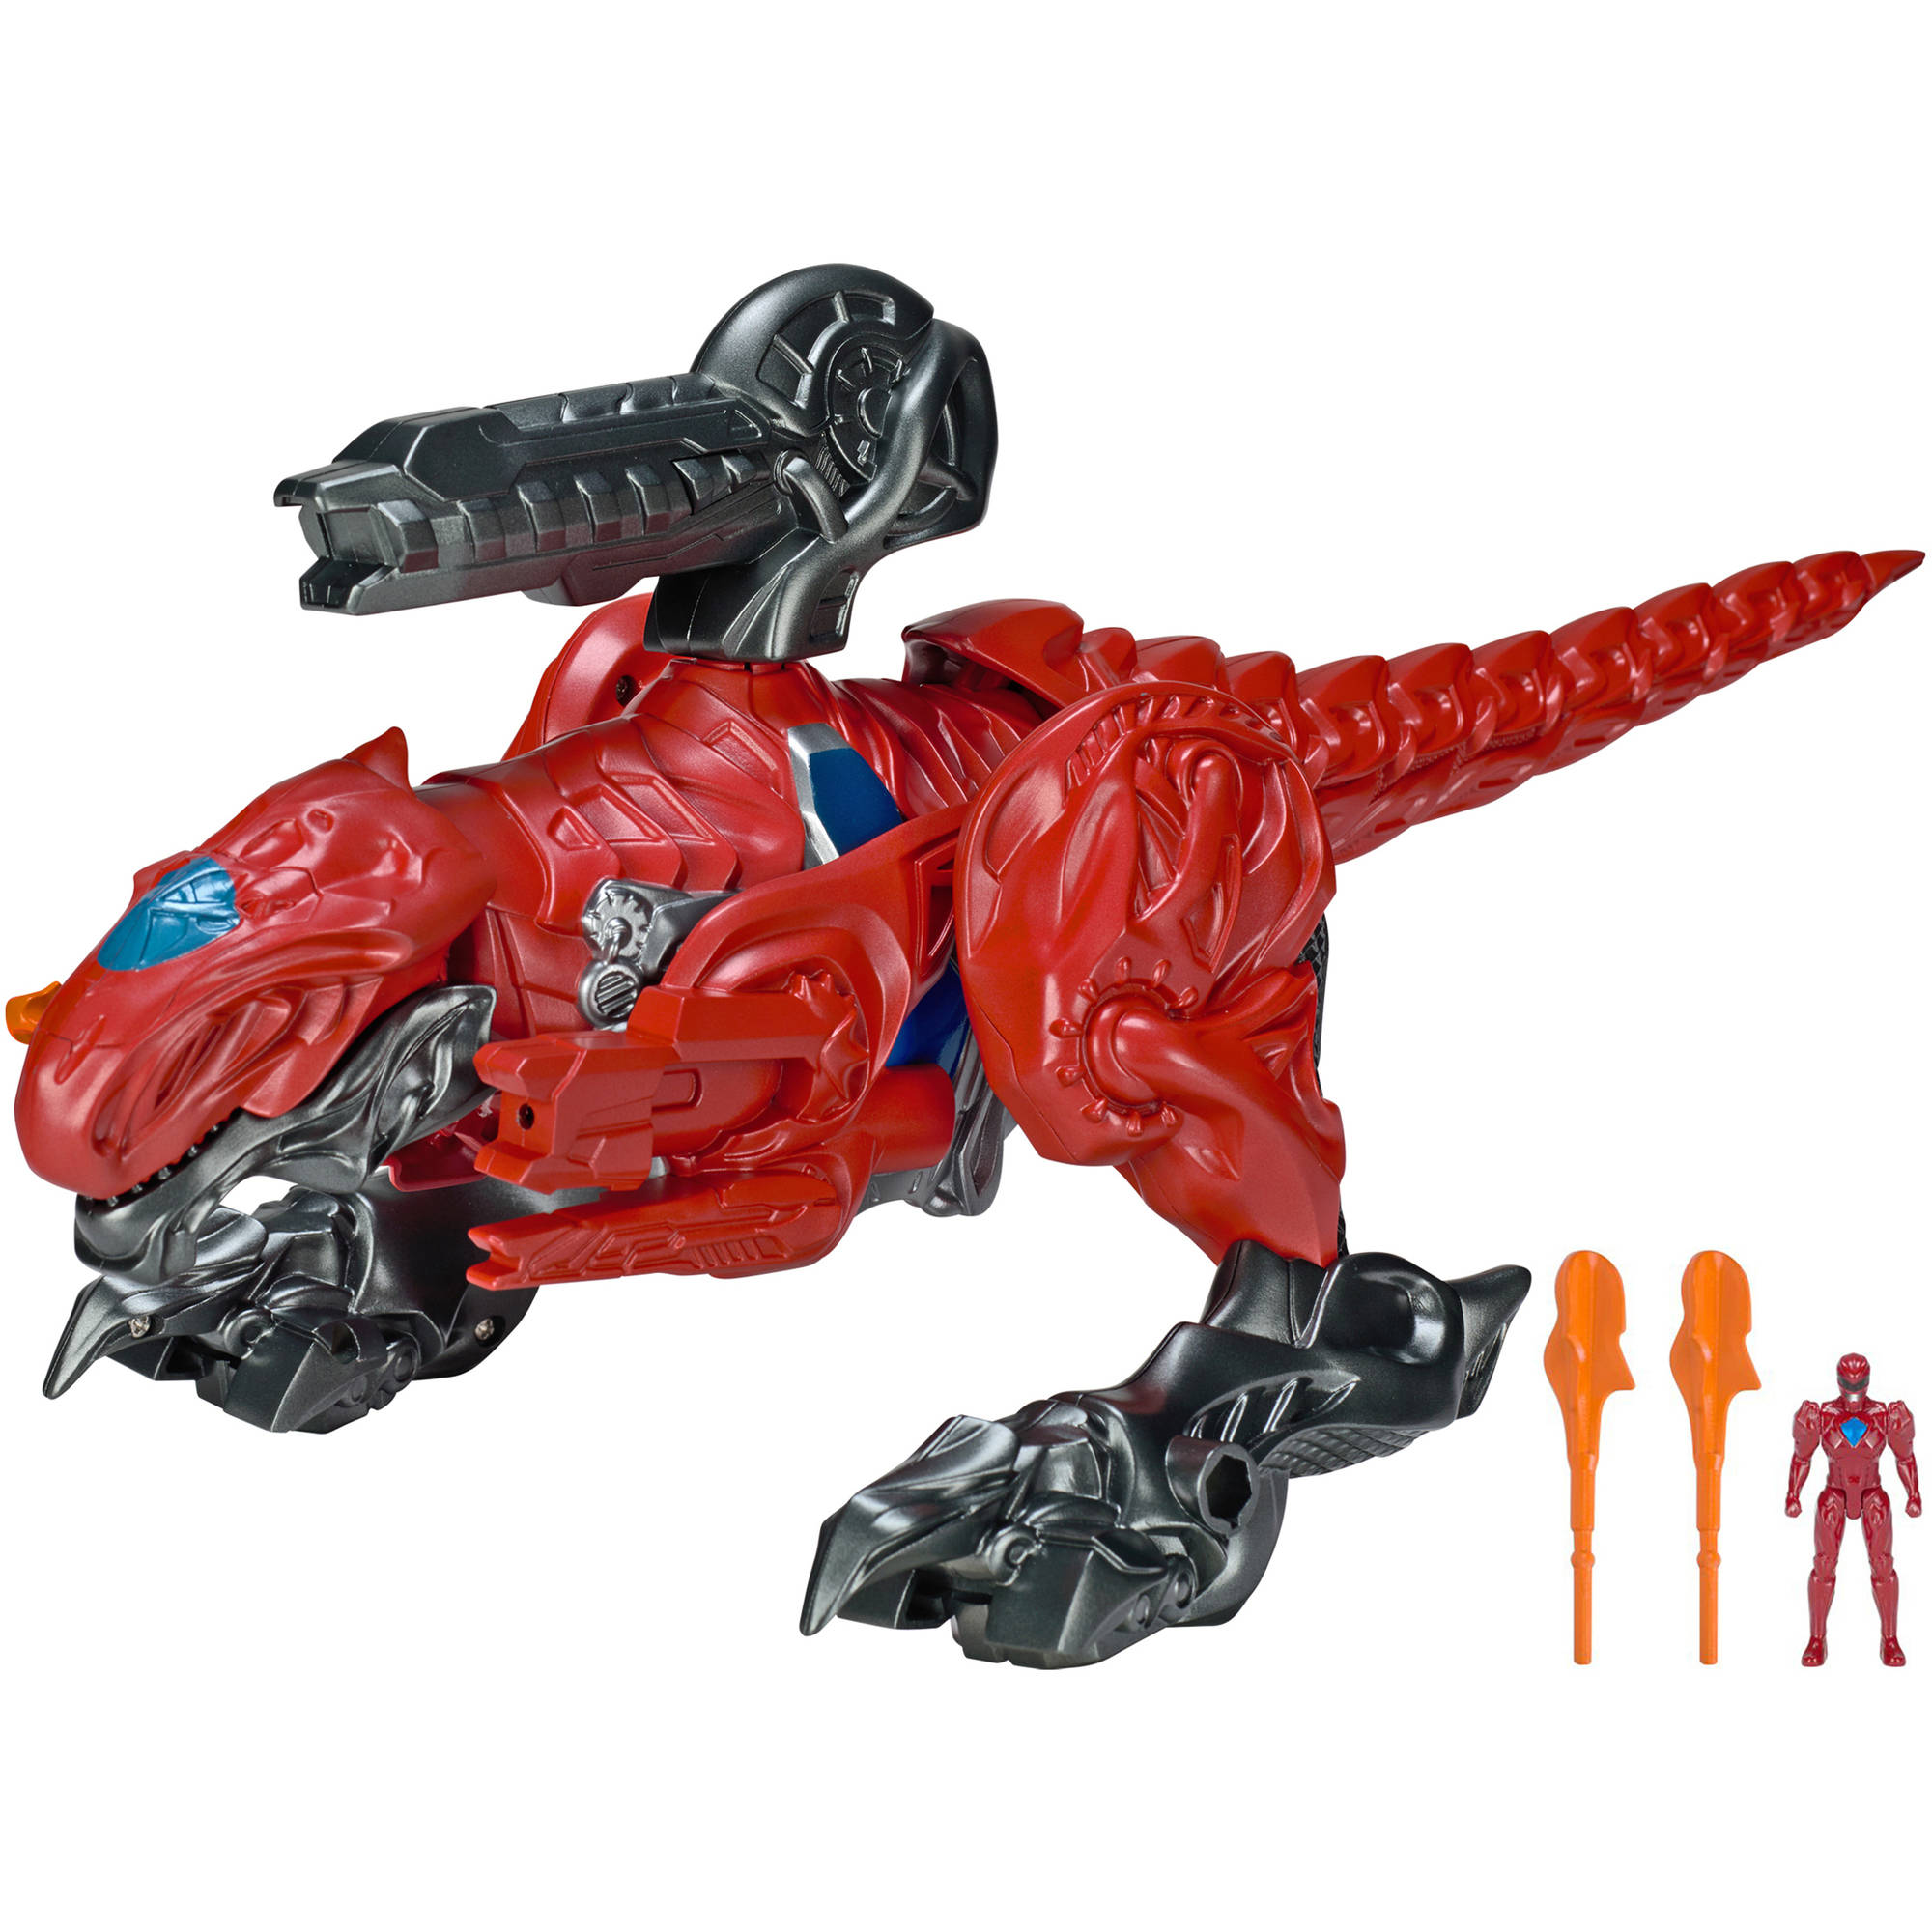 Mighty Morphin Power Rangers Movie T-Rex Epic Battle Zord with Figure by Bandai America, Inc